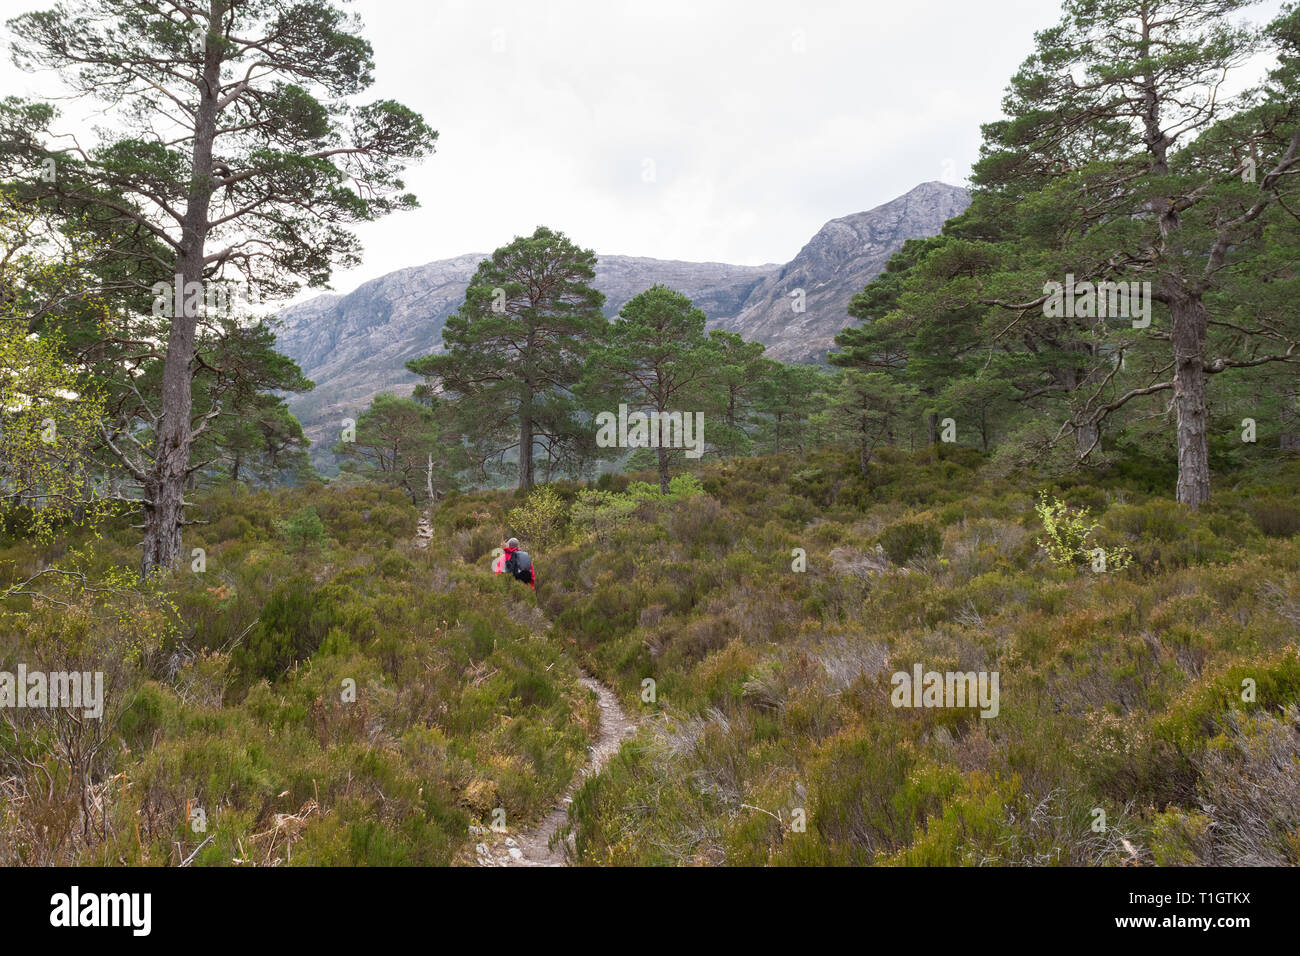 Scots Pines - Pinus sylvestris - hiker walking through remnants of the ancient Caledonian Forest - Beinn Eighe, Scottish Highlands, UK Stock Photo